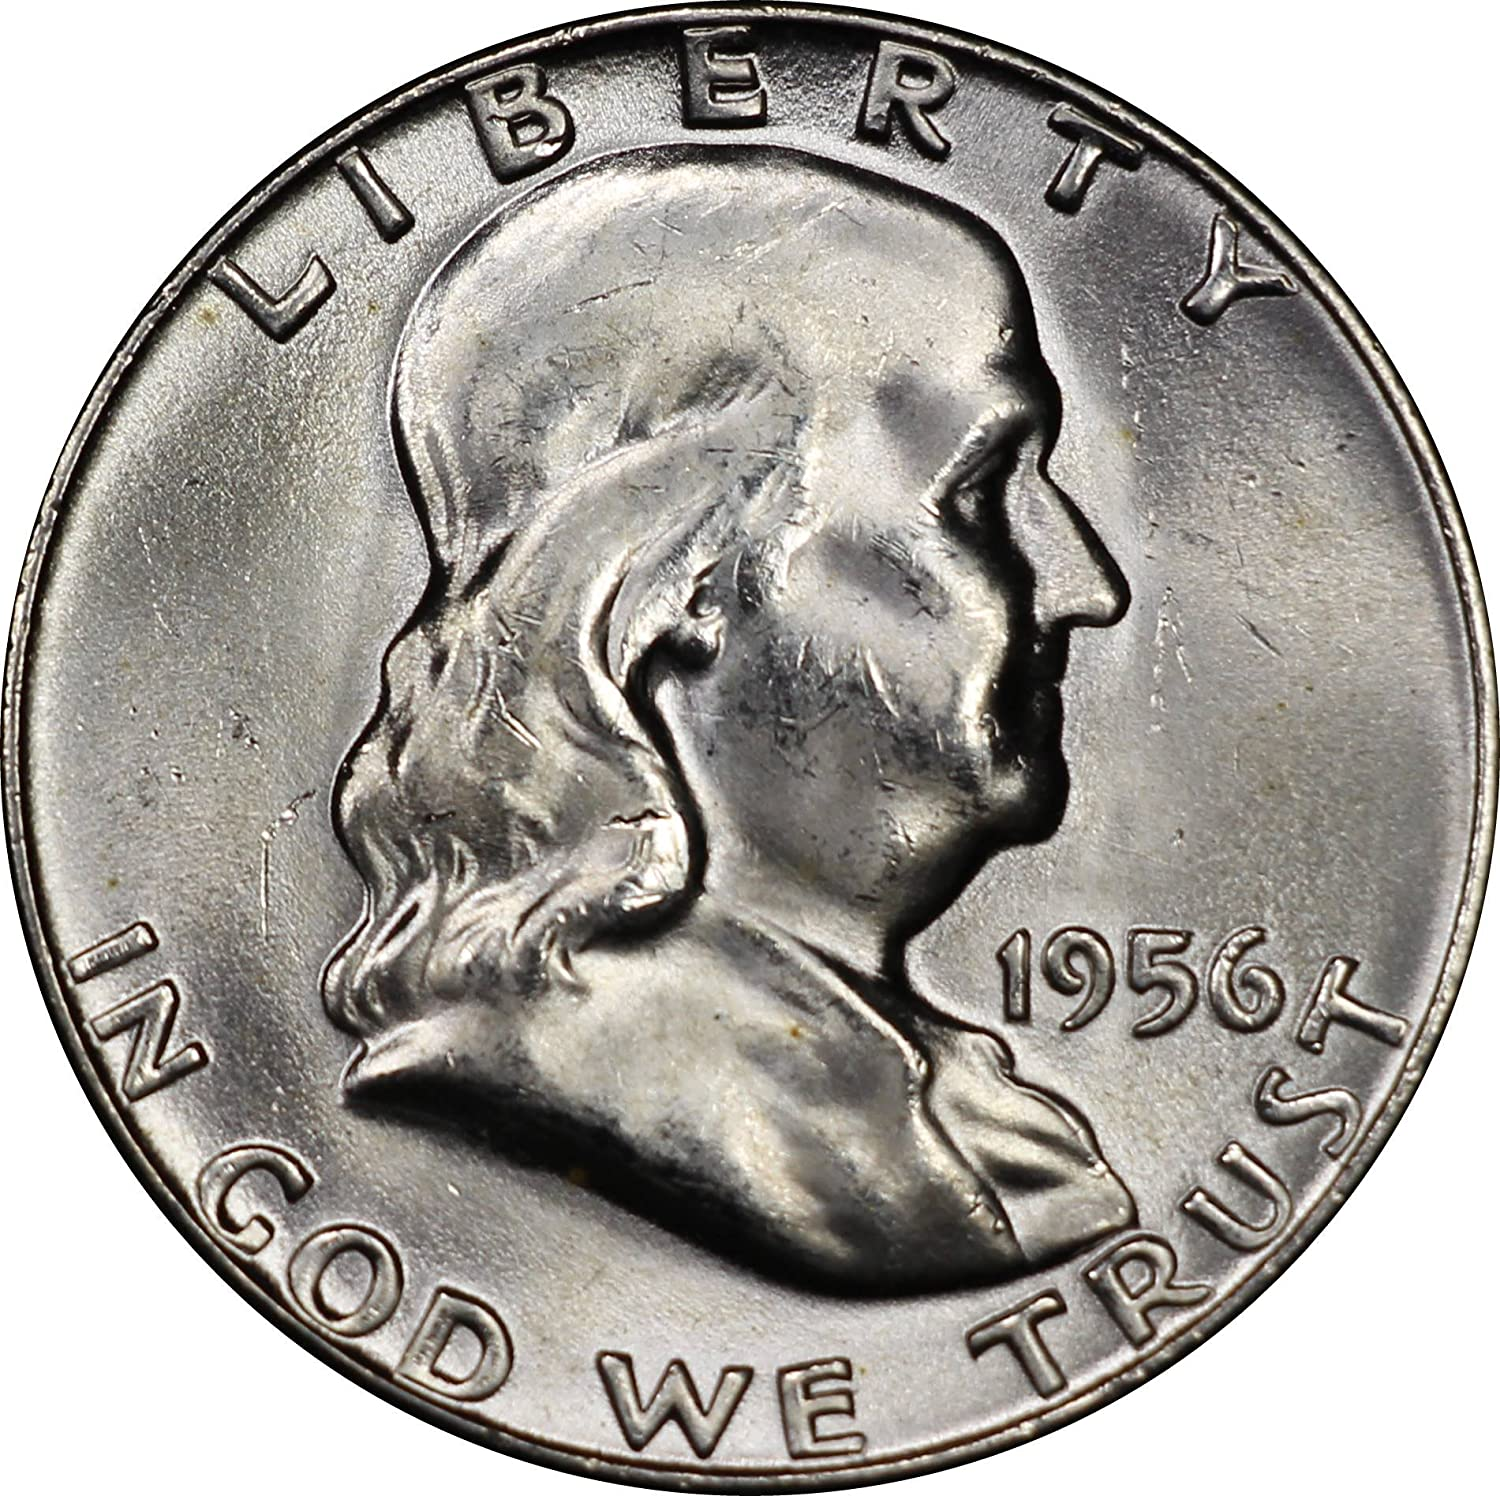 1956 U.S. Franklin Half Dollar Silver Coin, Mint State Condition